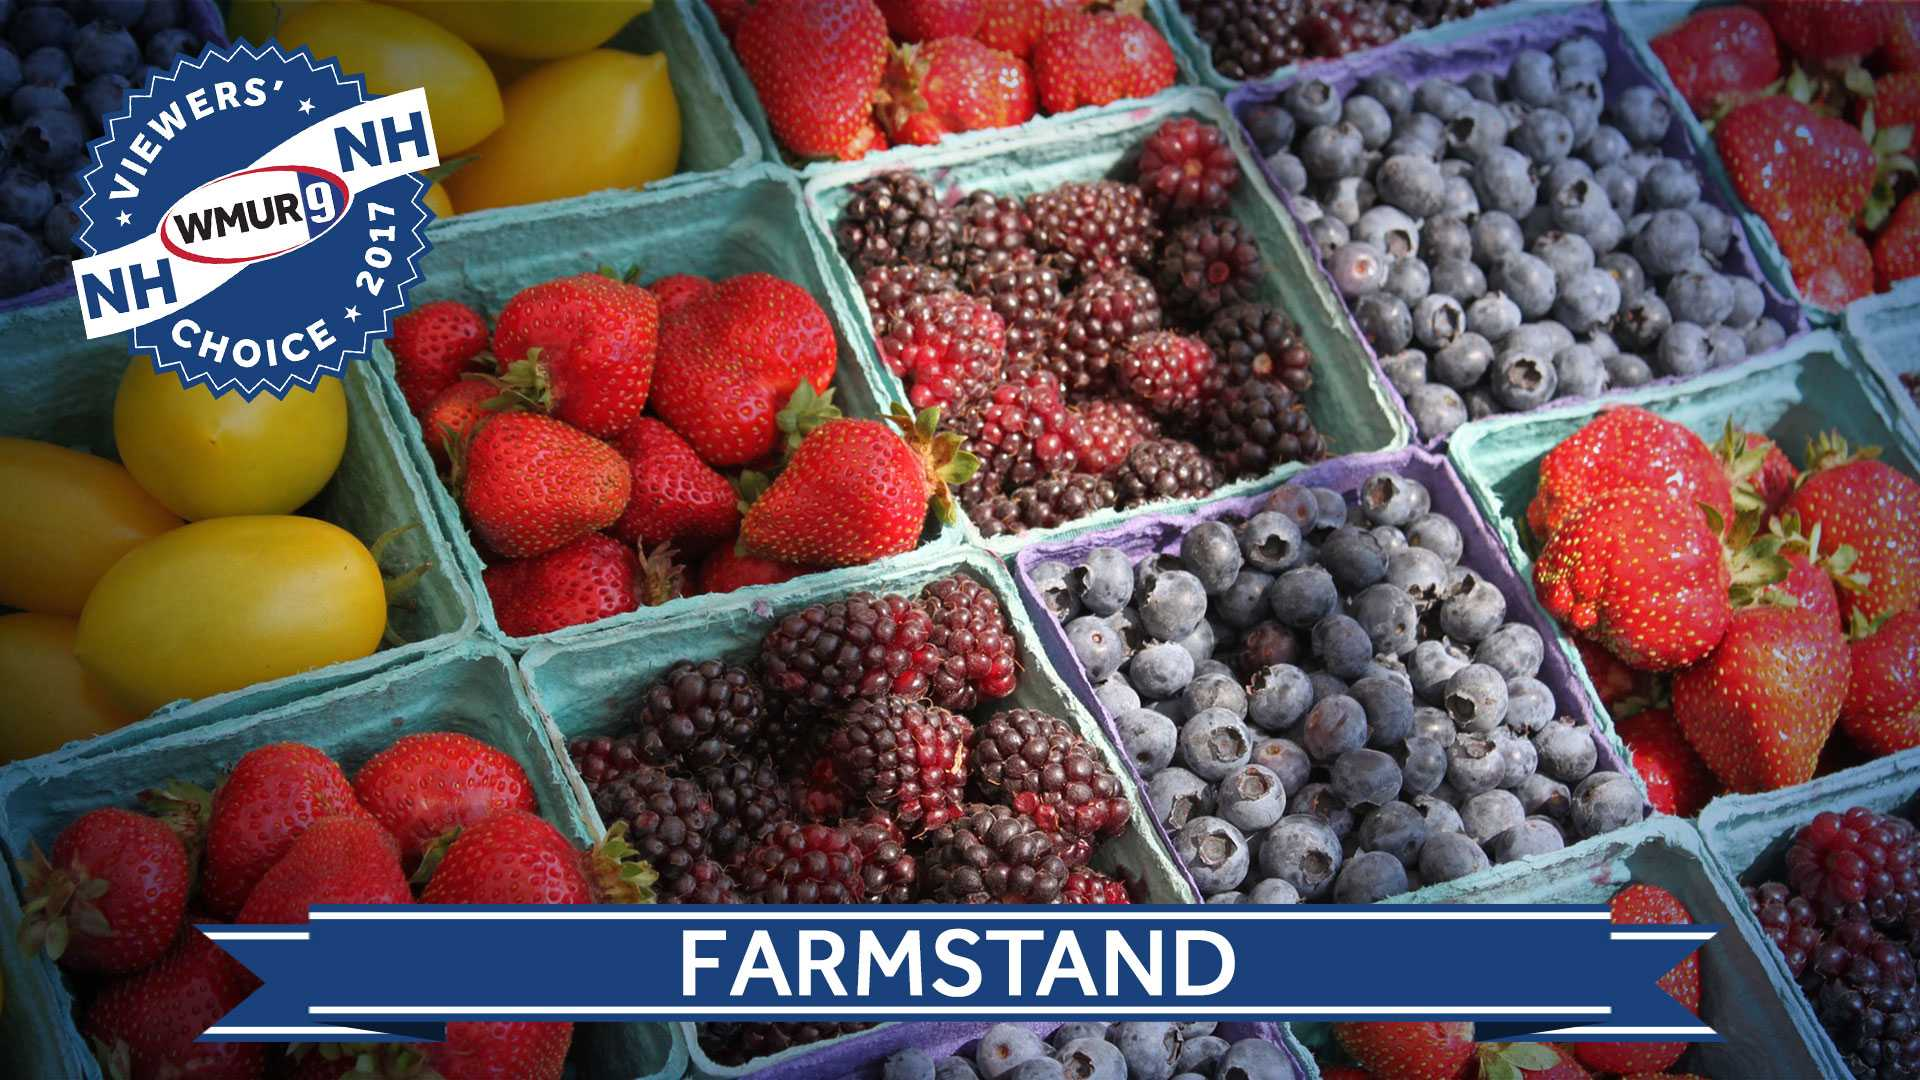 Farmstand farm stand Viewers' Choice